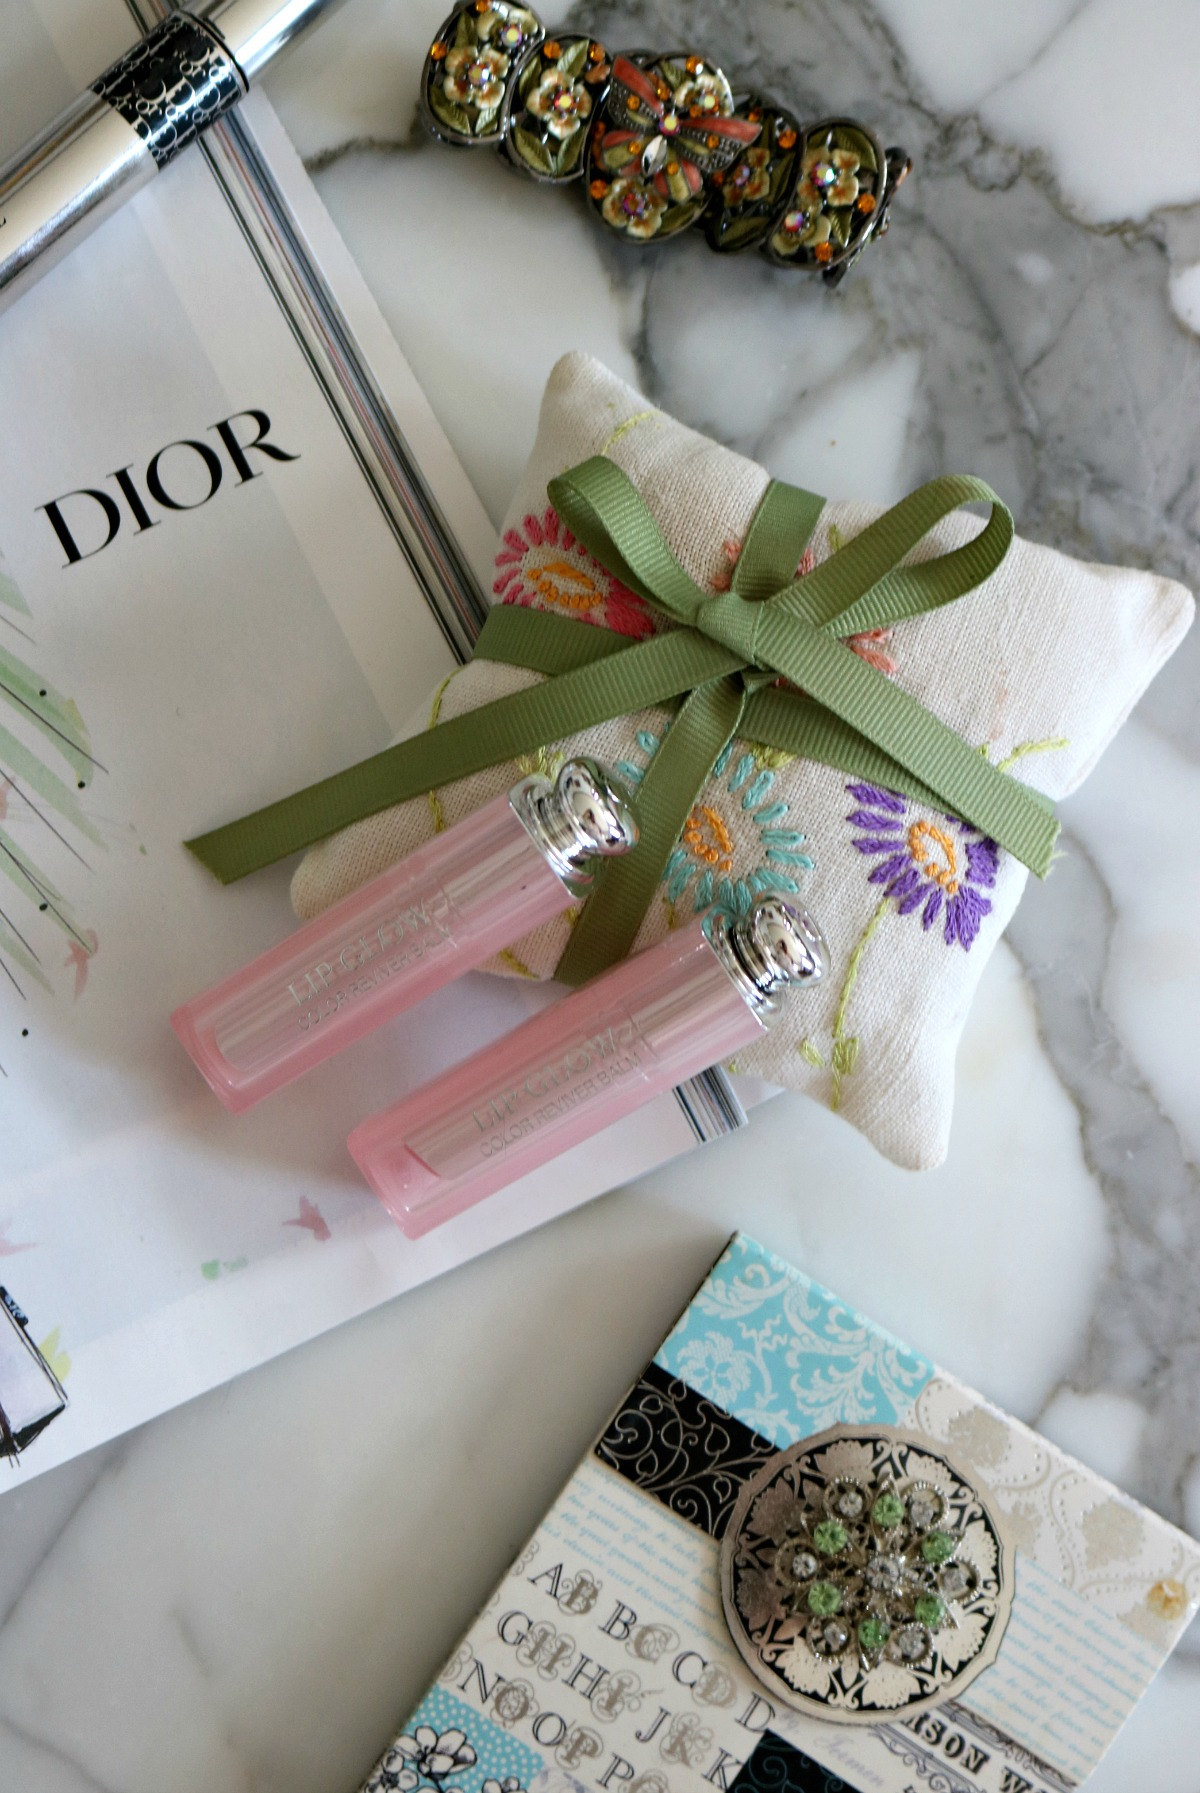 Surviving the Winter with Dior Lip Glow